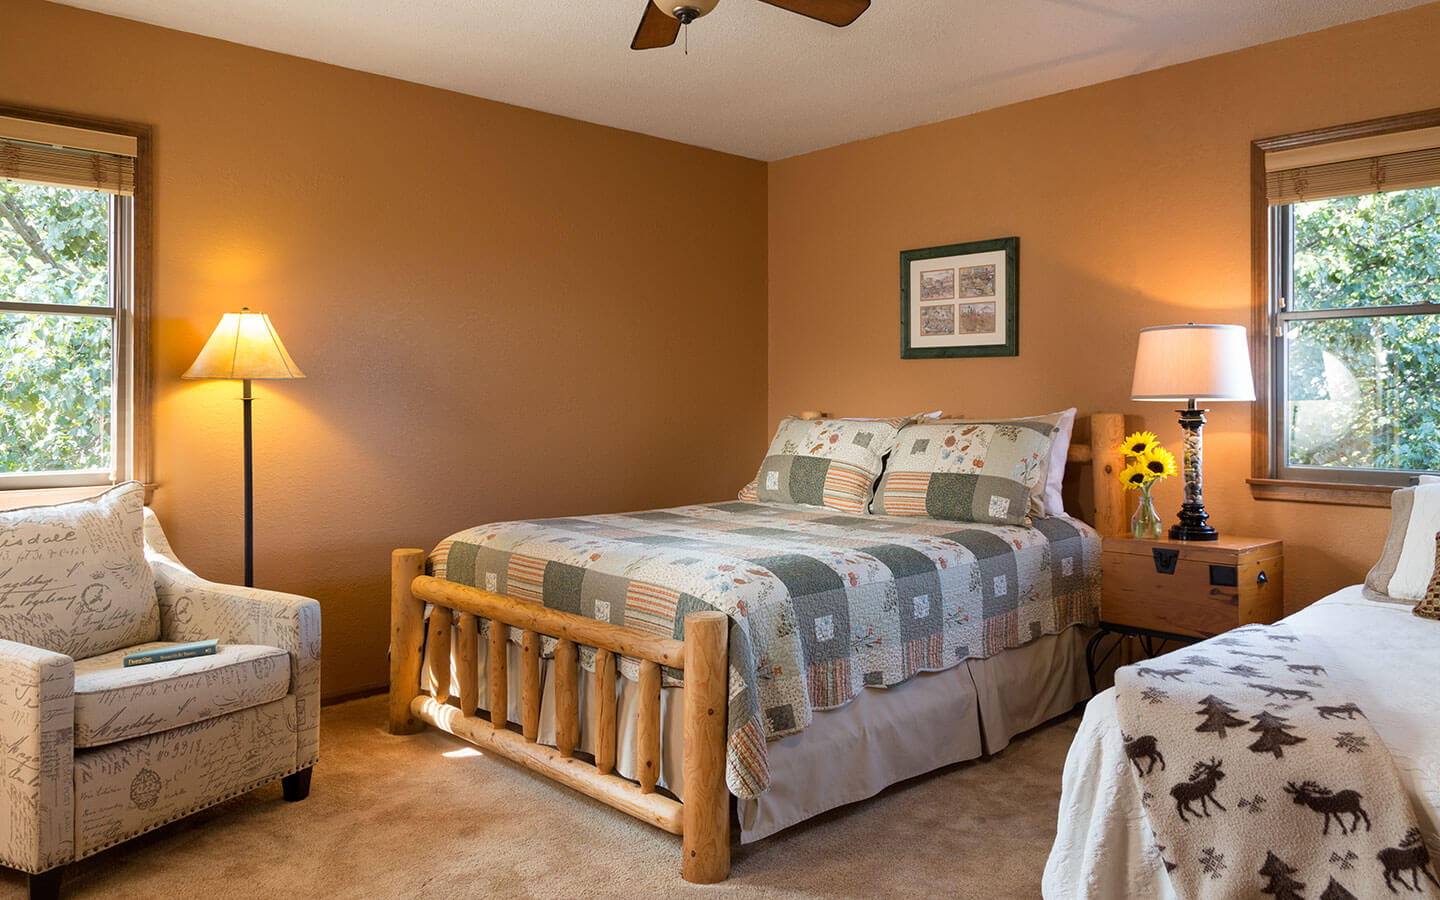 Midwest Bed and Breakfast - North by Northwest B&B Room